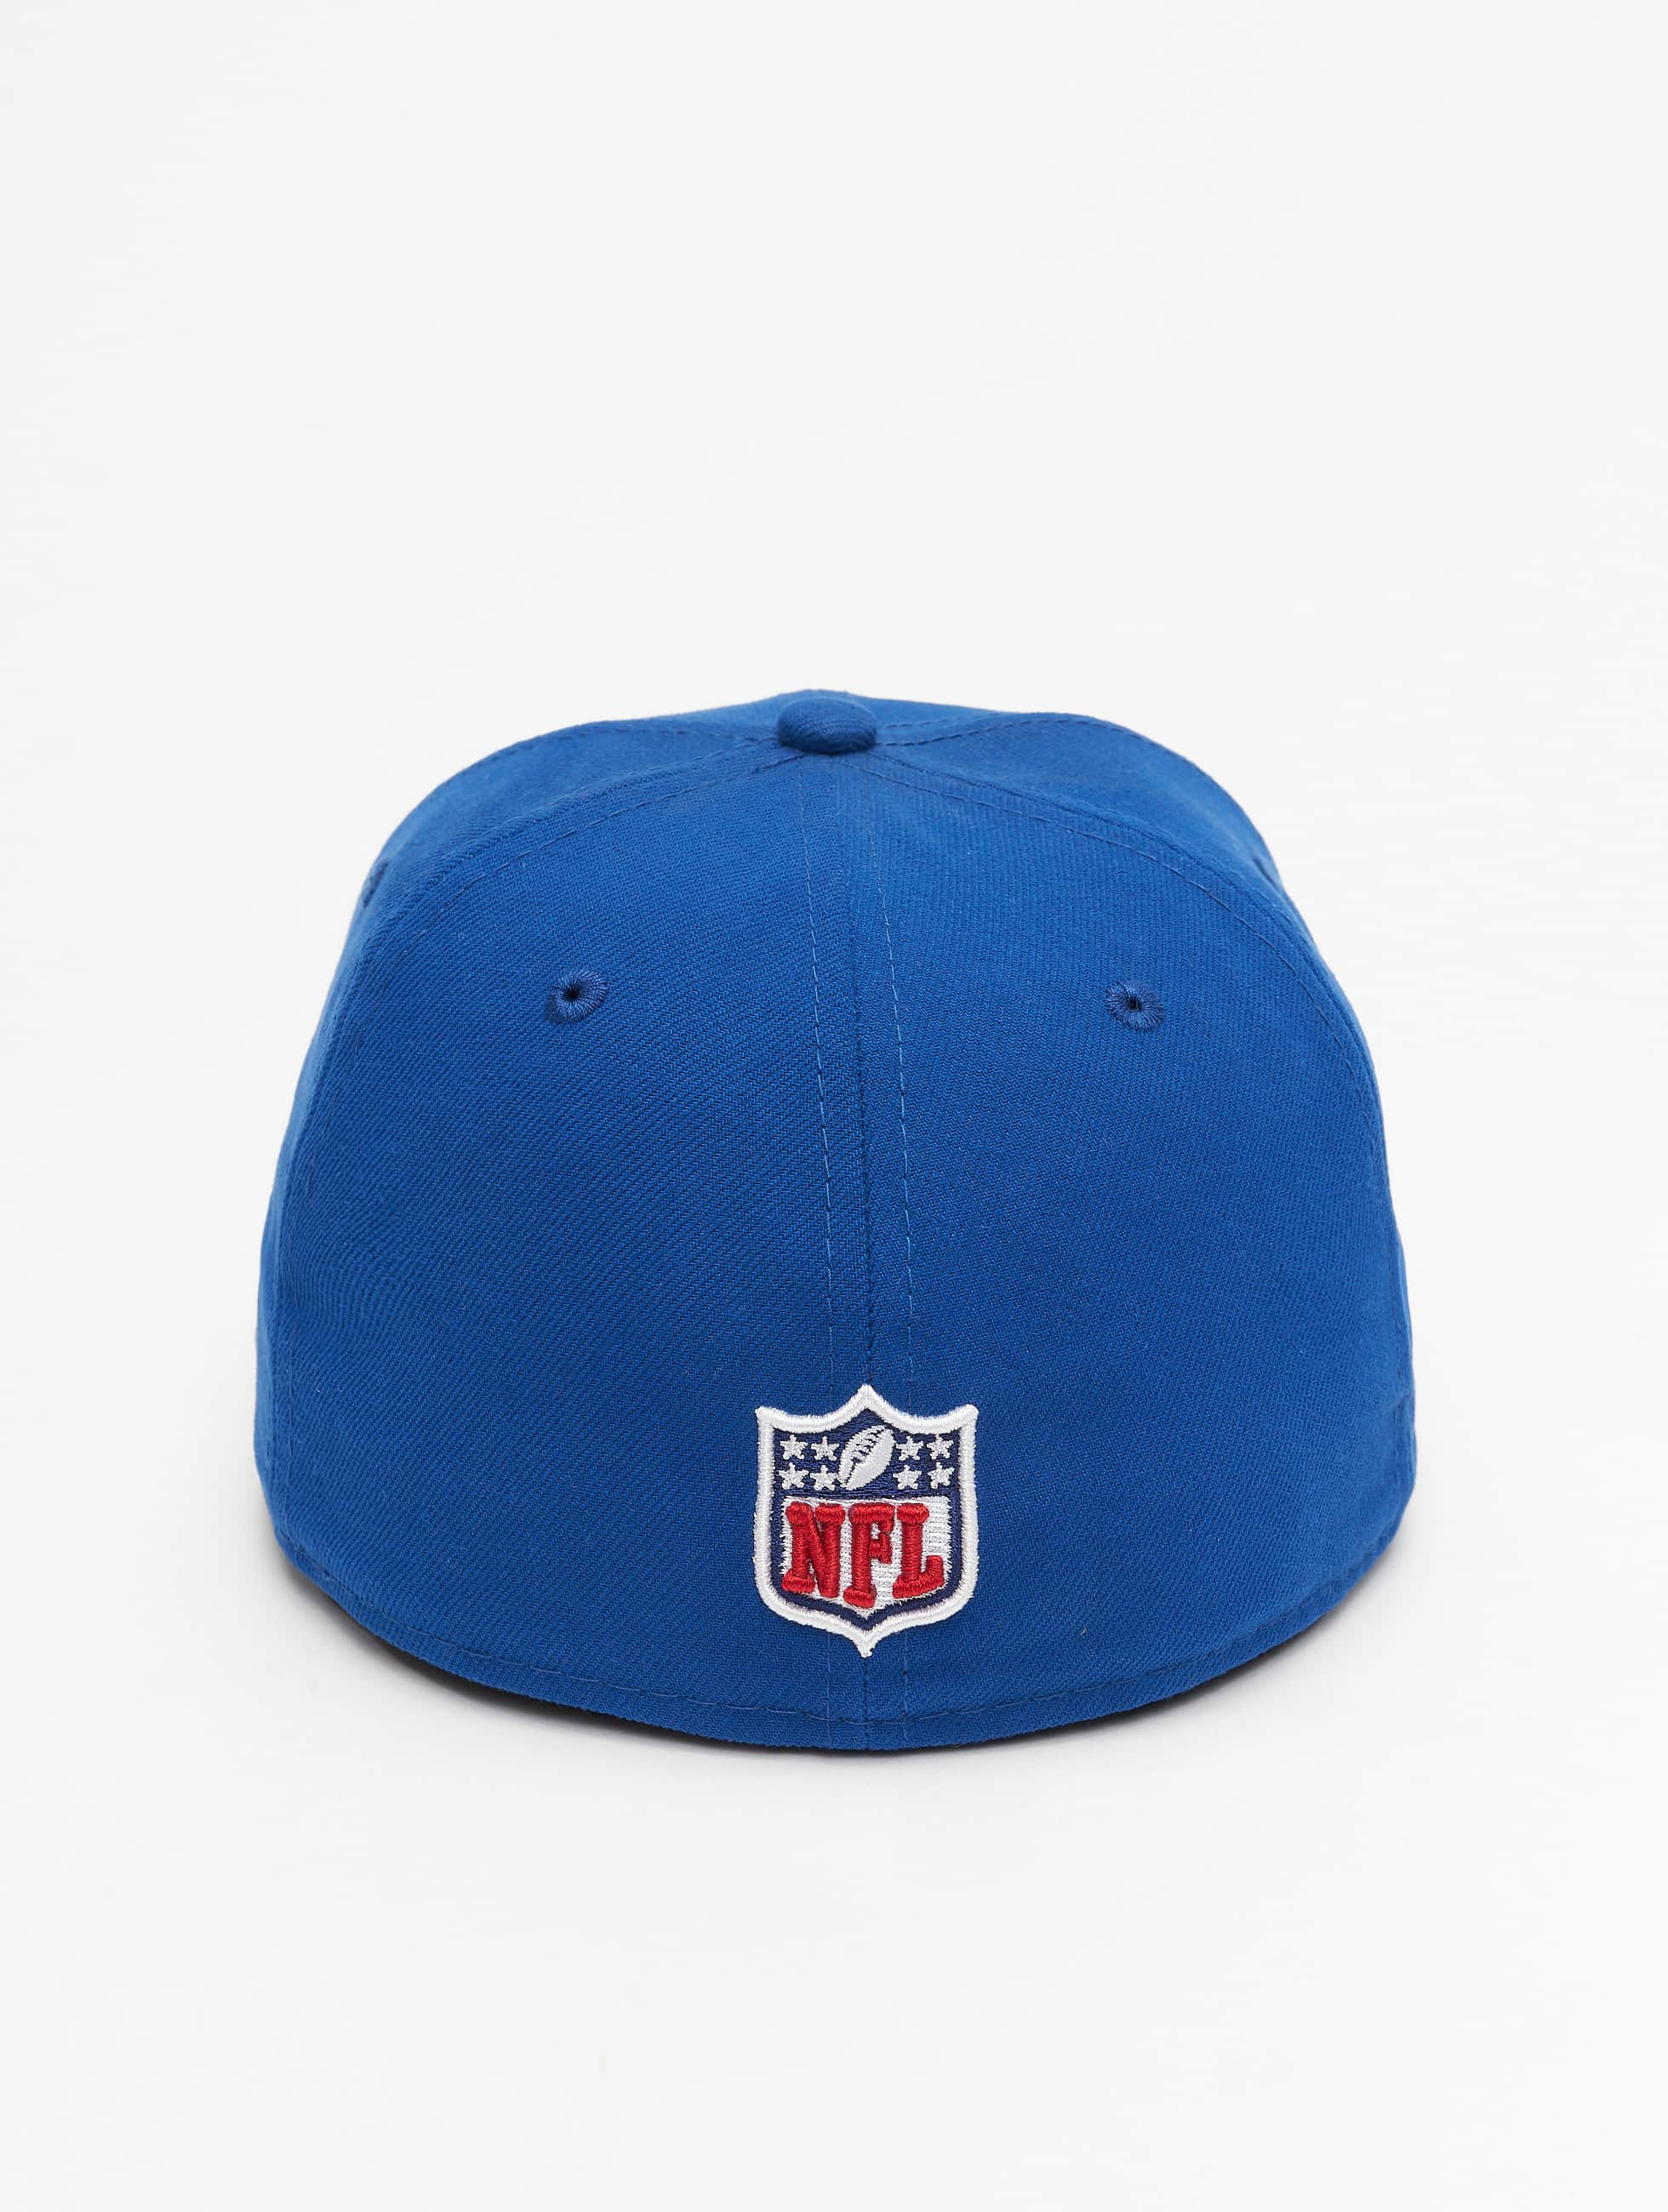 New Era Бейсболка NFL On Field NY Giants 59Fifty синий